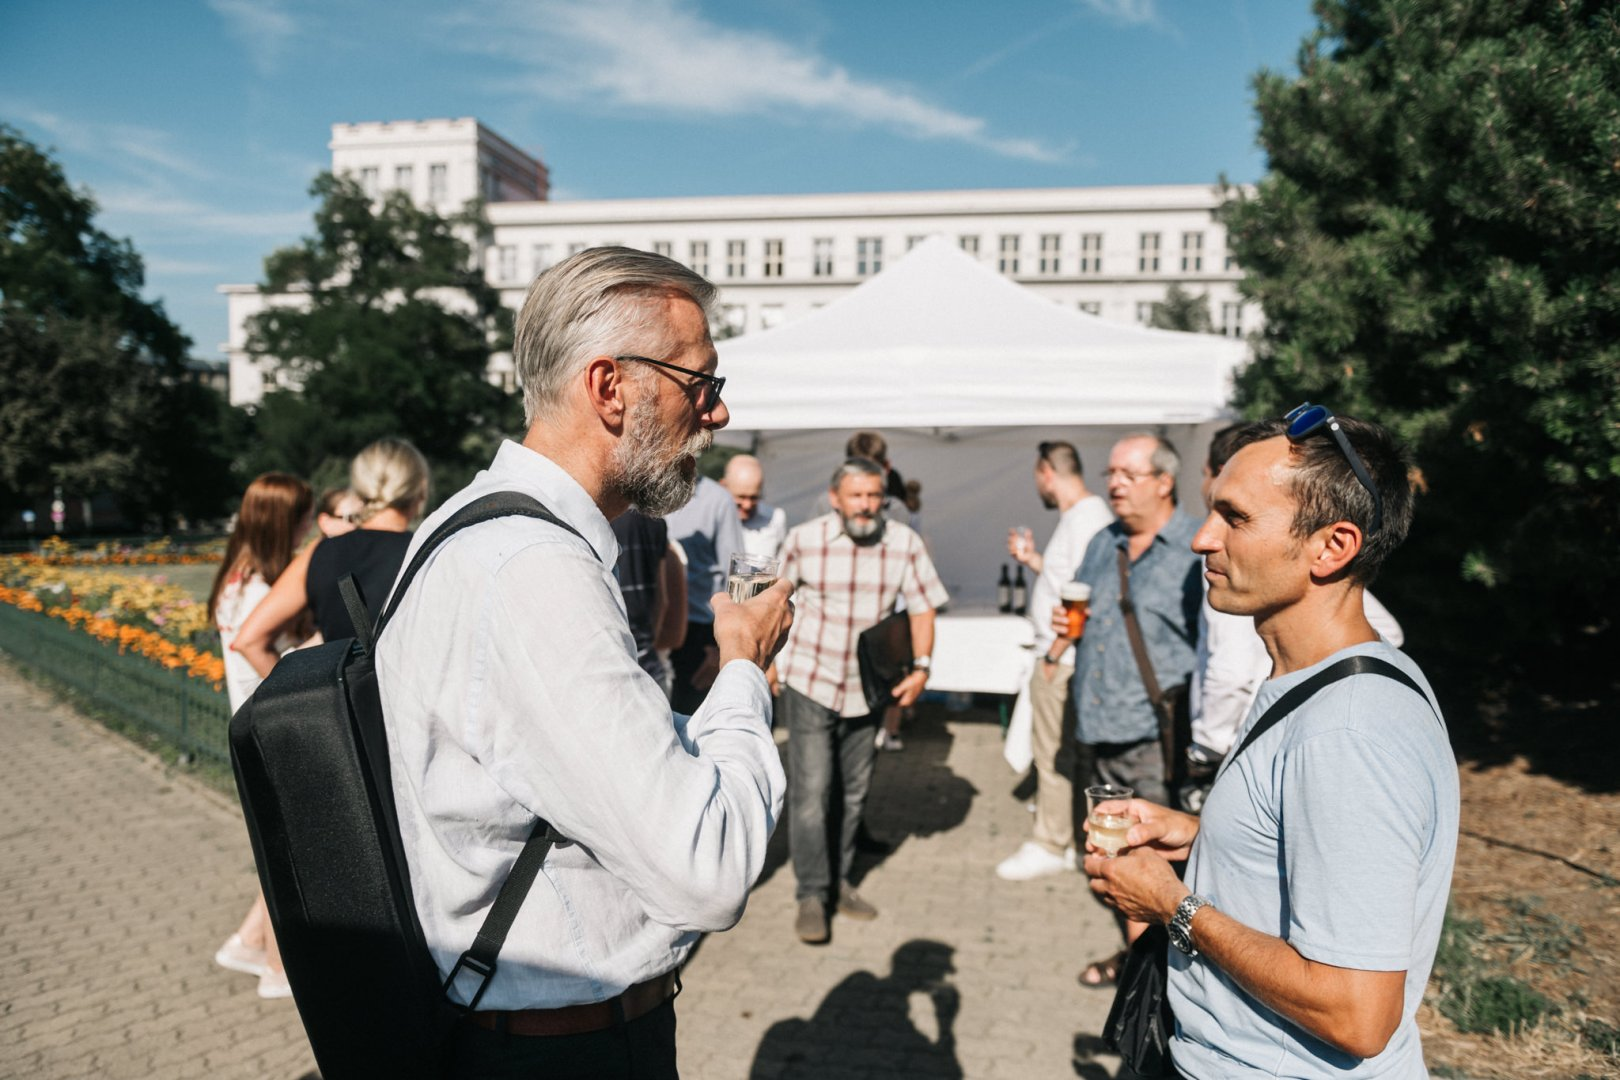 Meeting of owners on Žižka square 24/7/2019